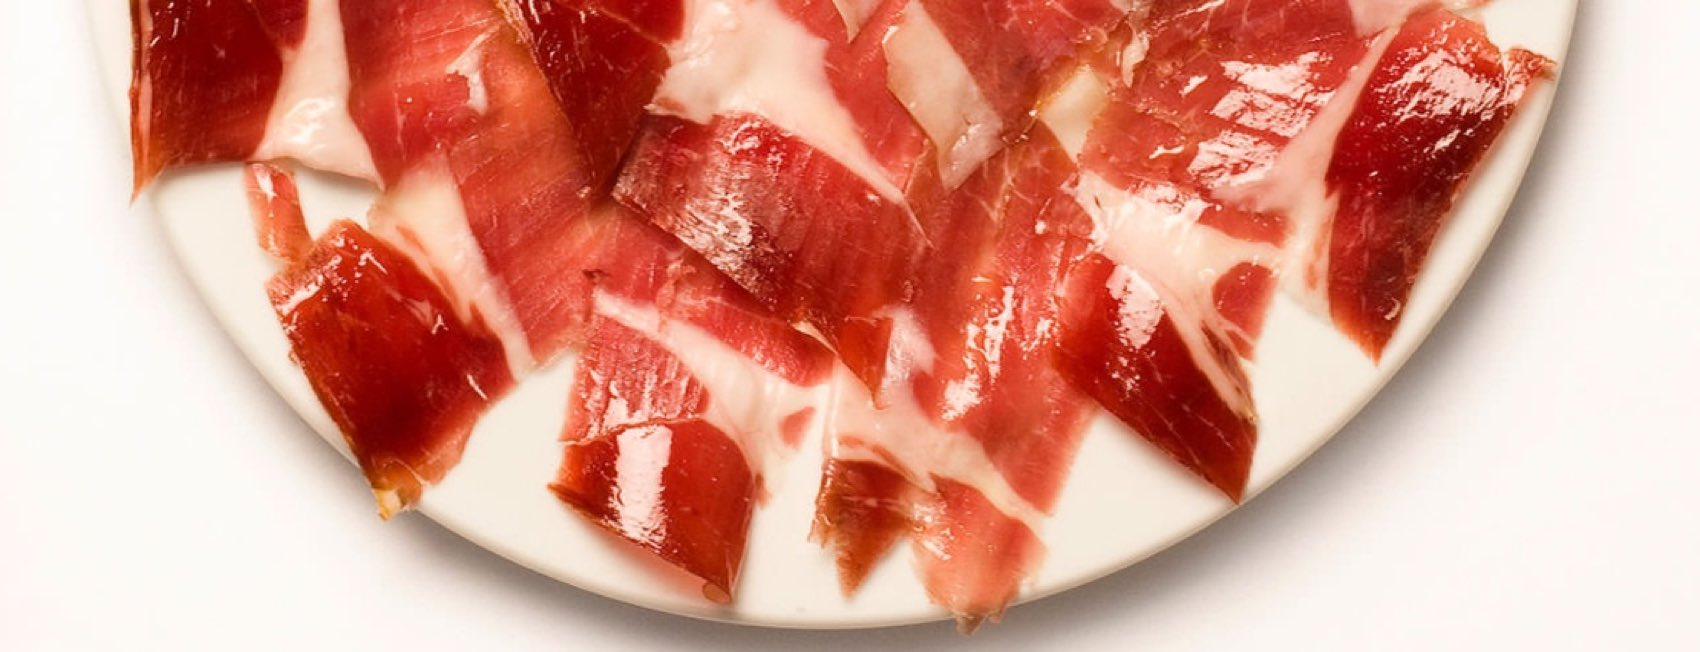 Jamón Ibérico is made from farm-raised, usually crossbred Ibérico pigs that are raised indoors.